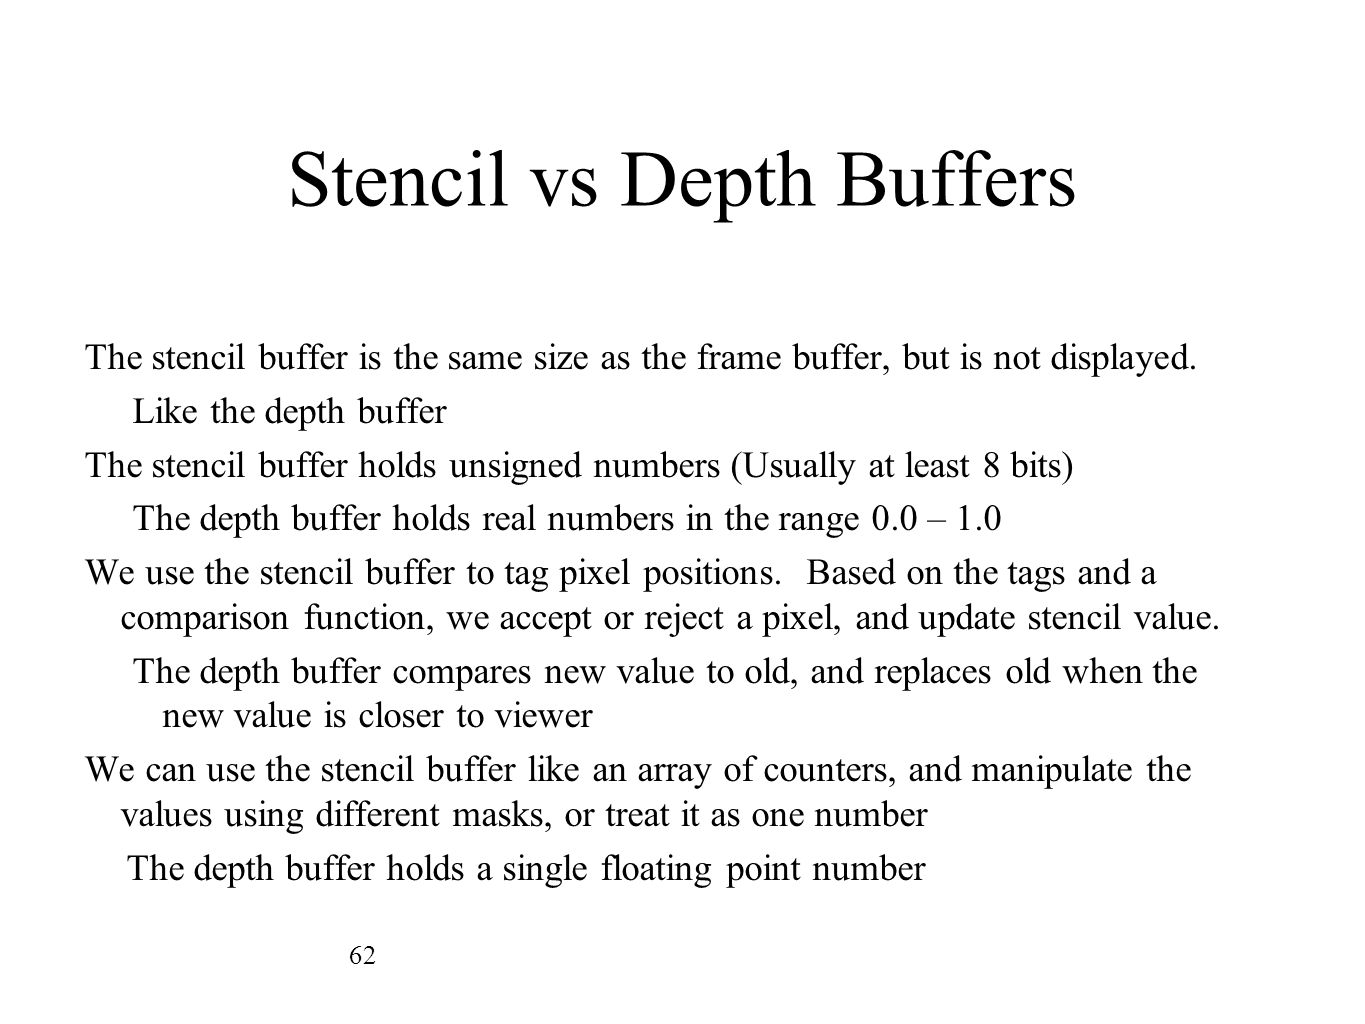 Stencil vs Depth Buffers The stencil buffer is the same size as the frame buffer, but is not displayed. Like the depth buffer The stencil buffer holds